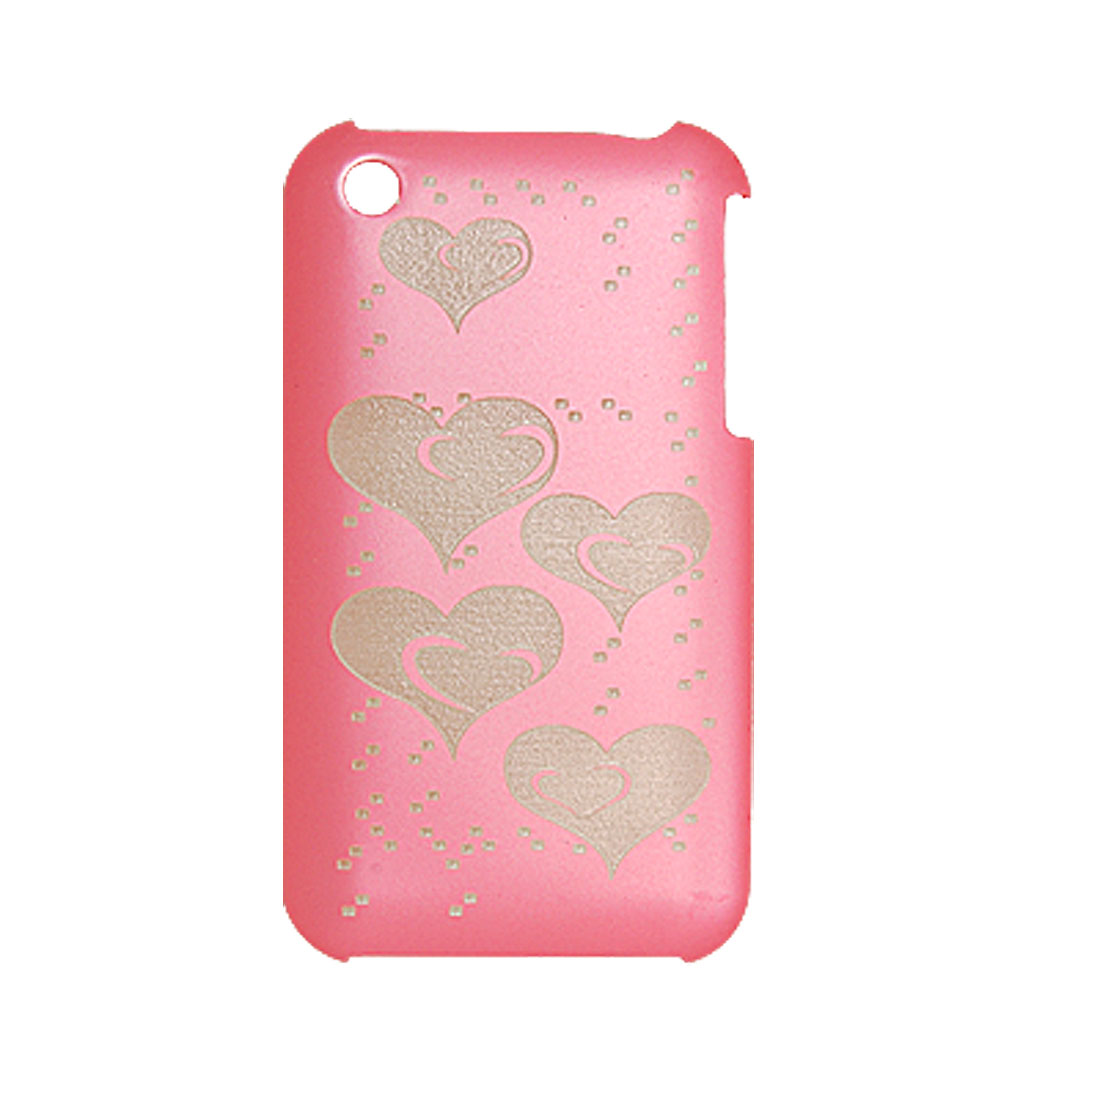 Screen Guard + Heart Plastic Back Case for iPhone 3G Pink